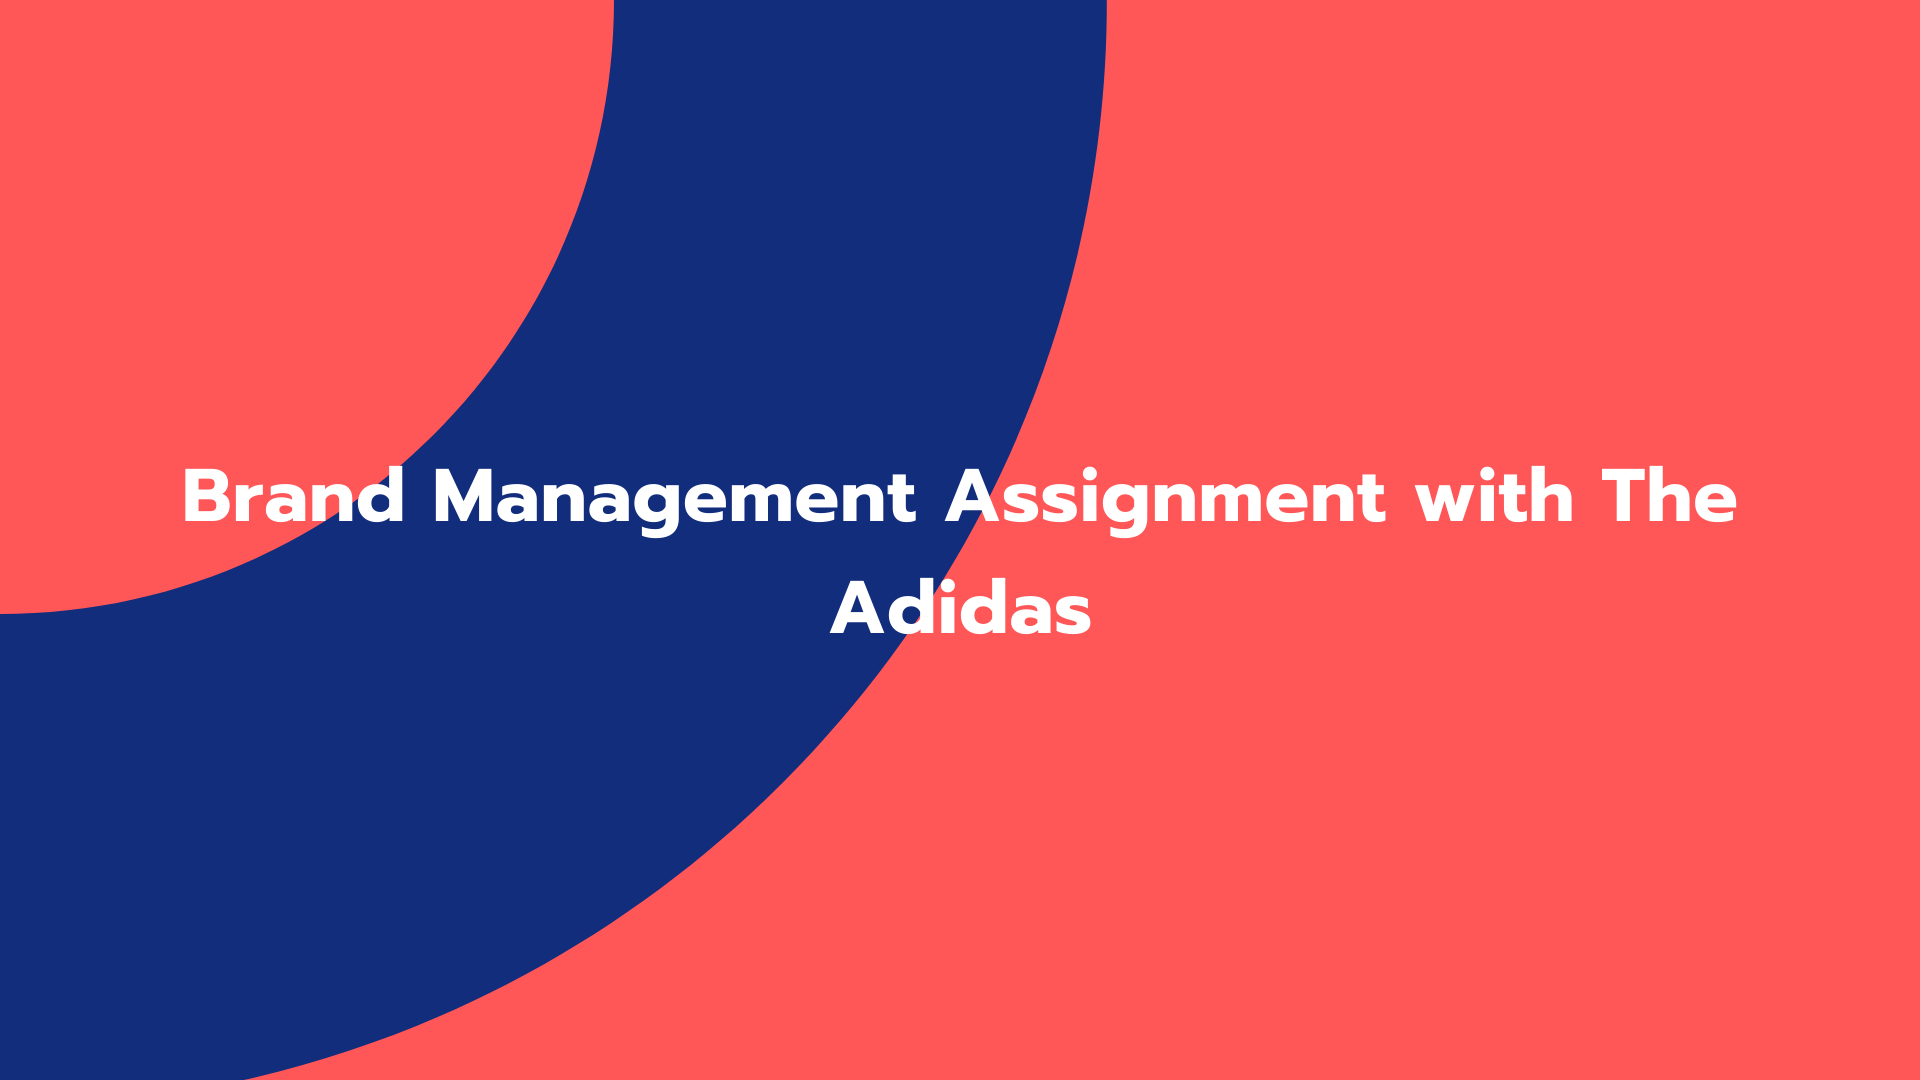 Brand Management Assignment with The Adidas